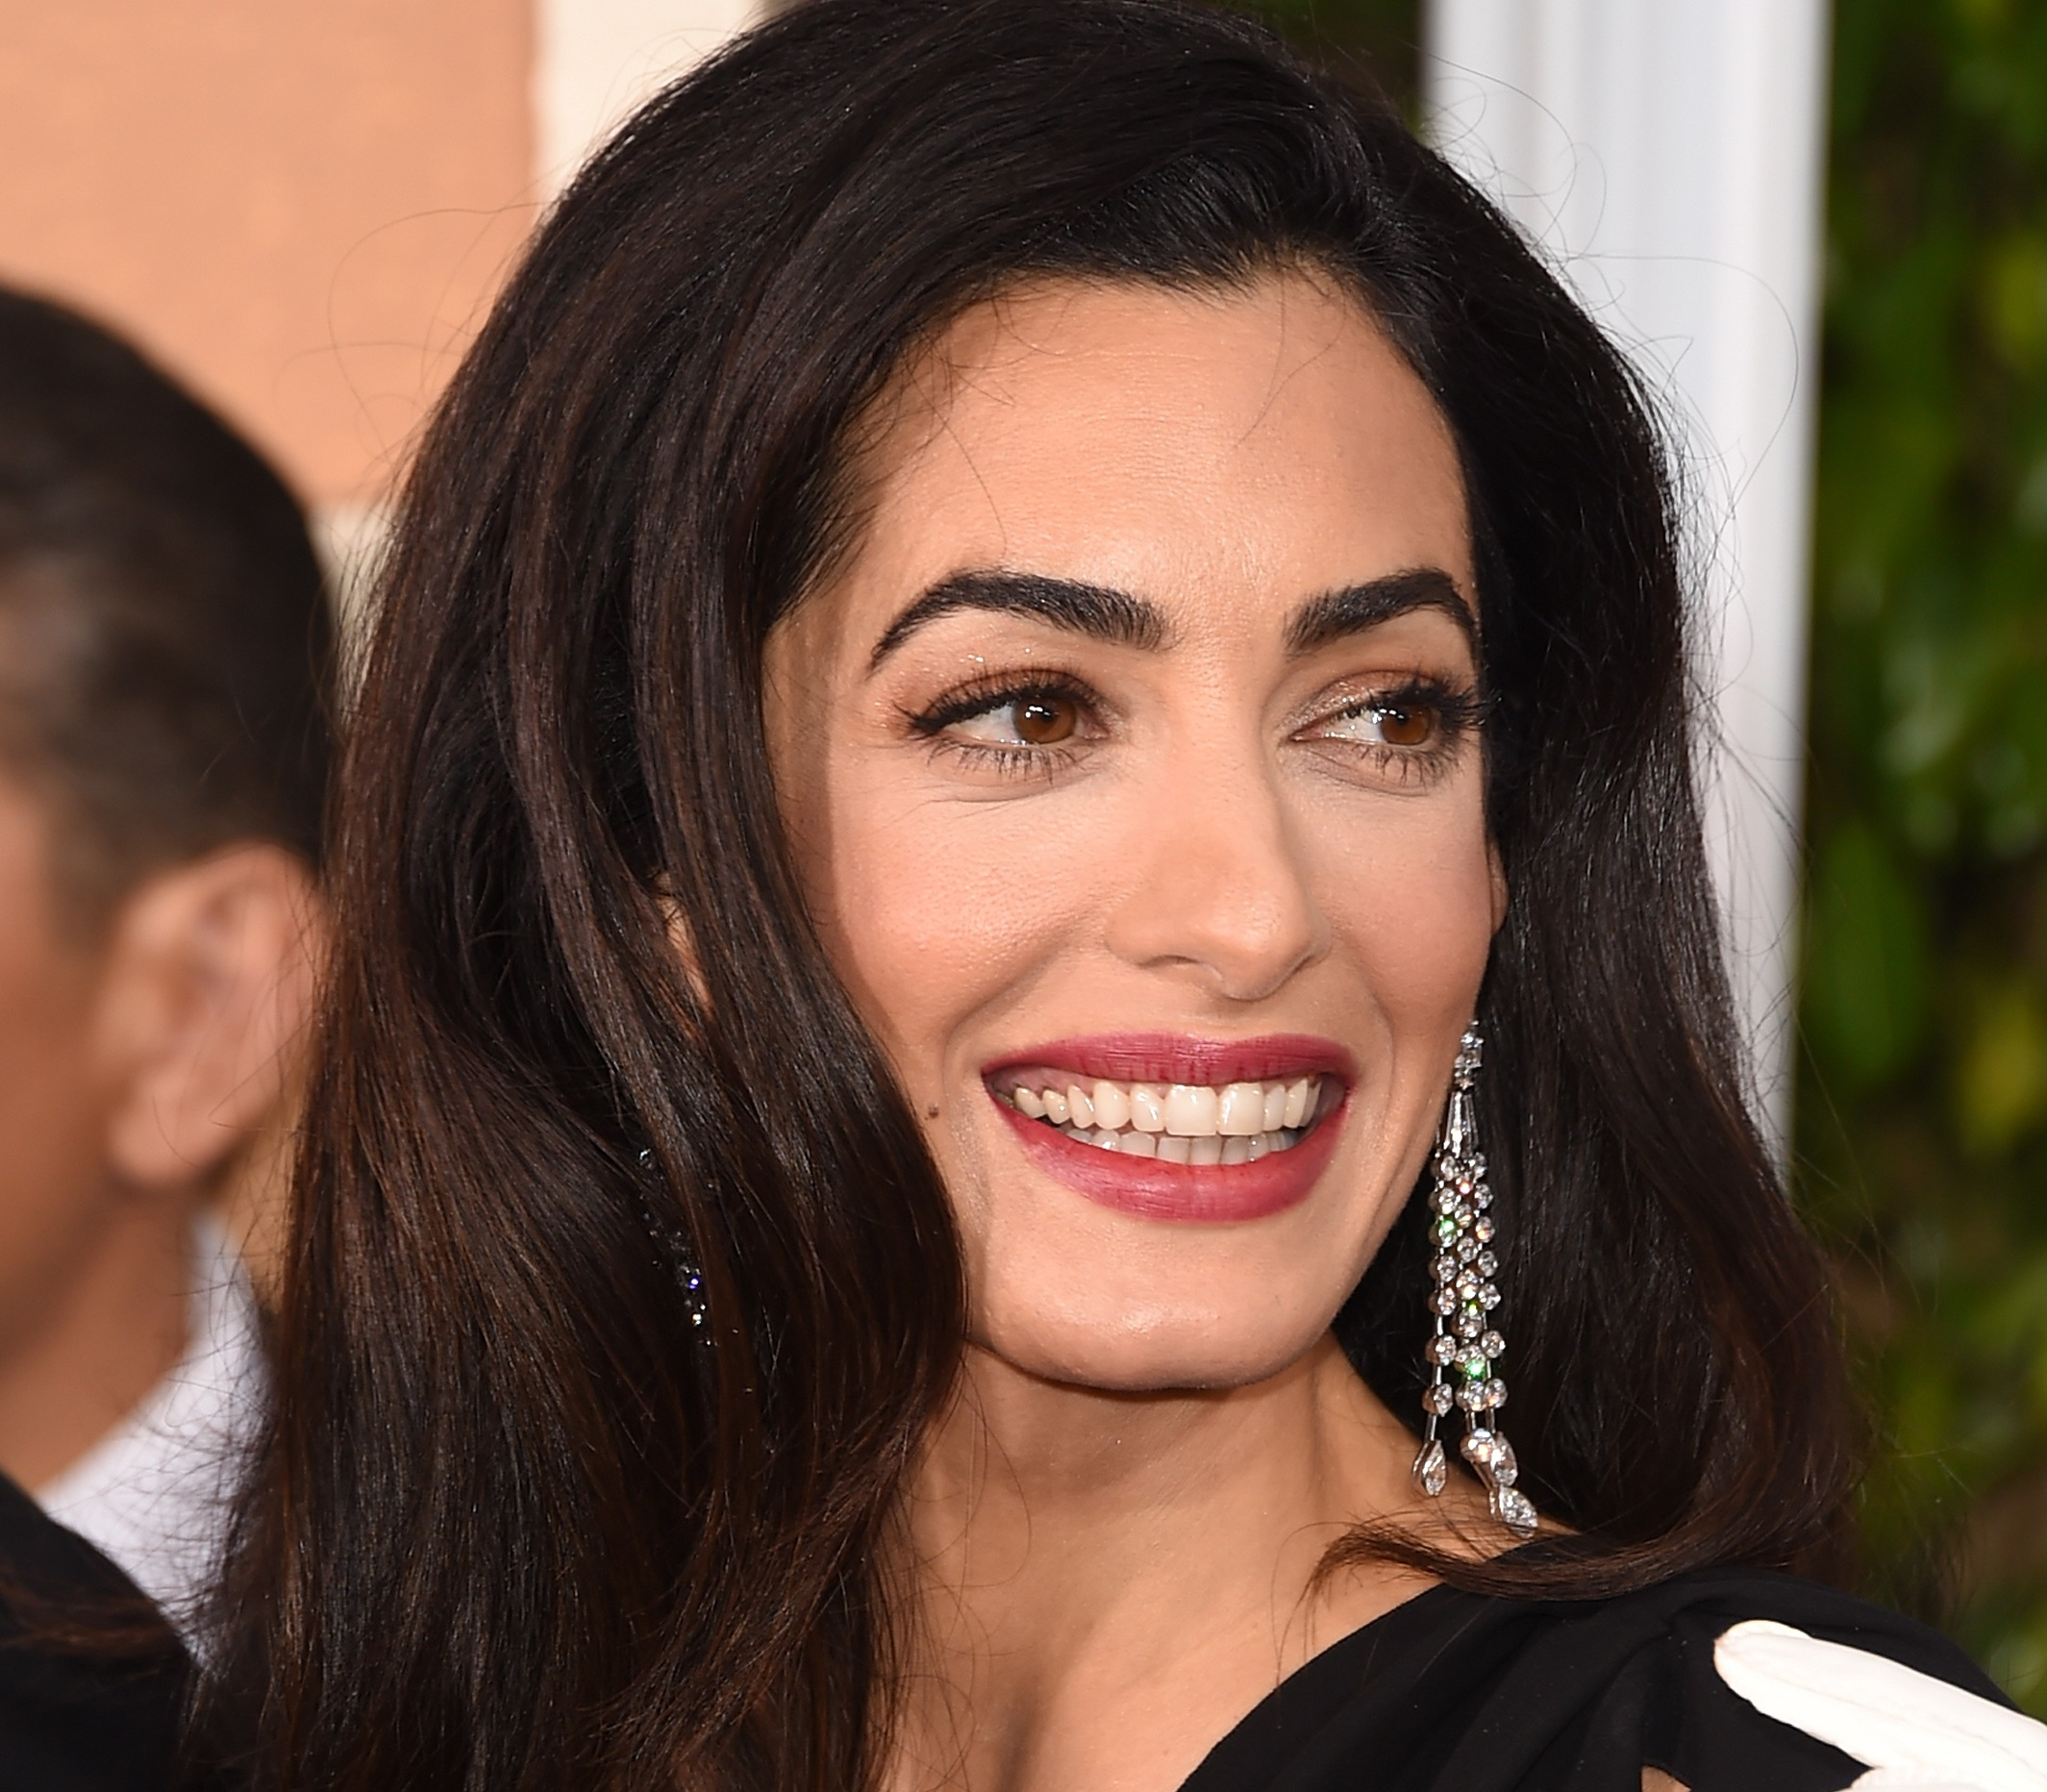 Professor Amal Clooney (Photo by Jason Merritt/Getty Images)